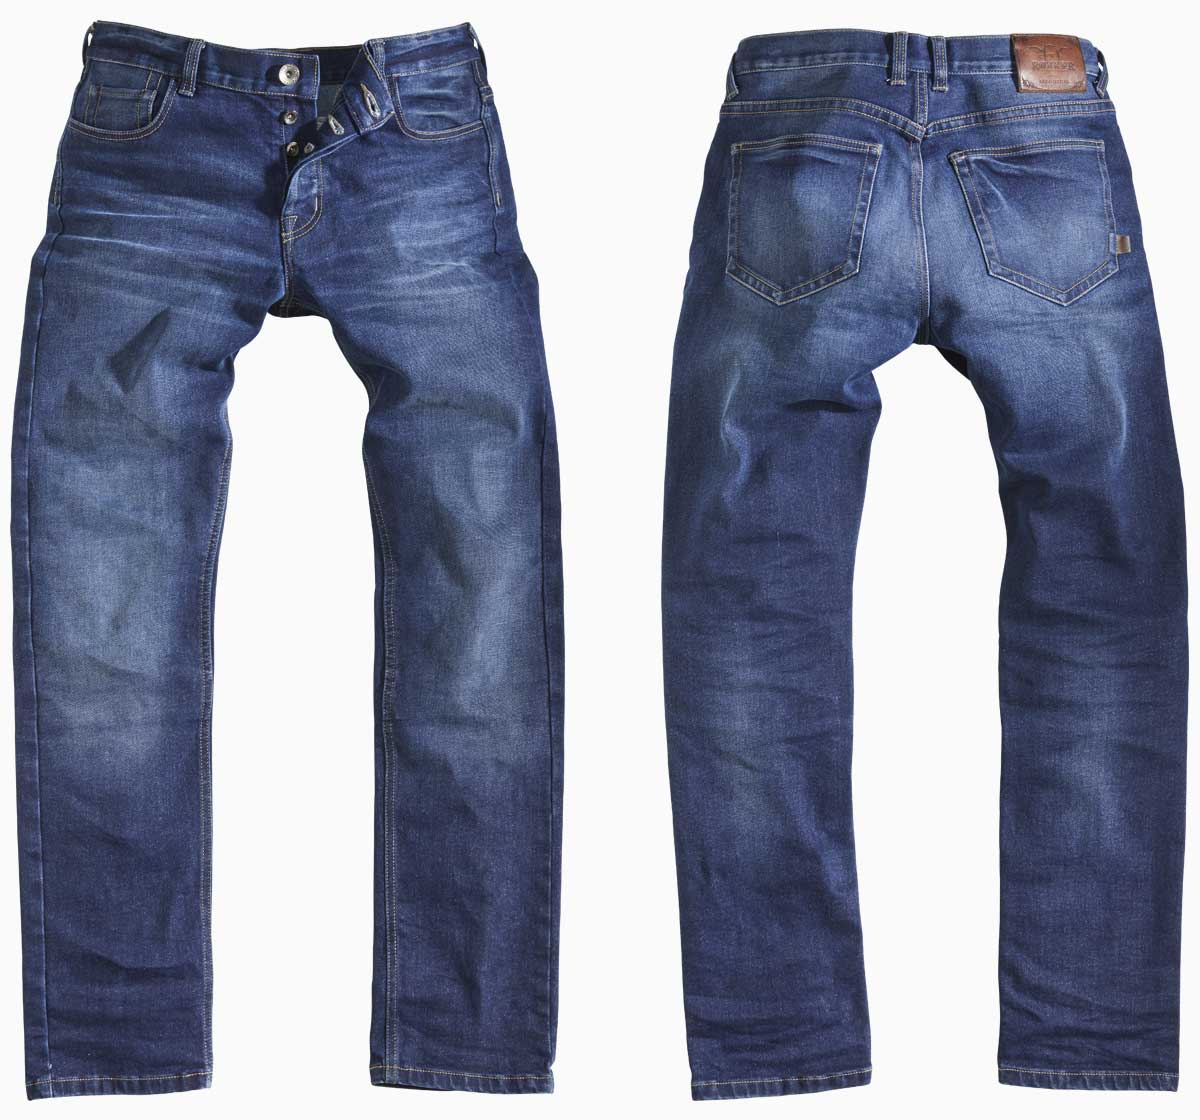 Rokker Rokkertech jean front and back